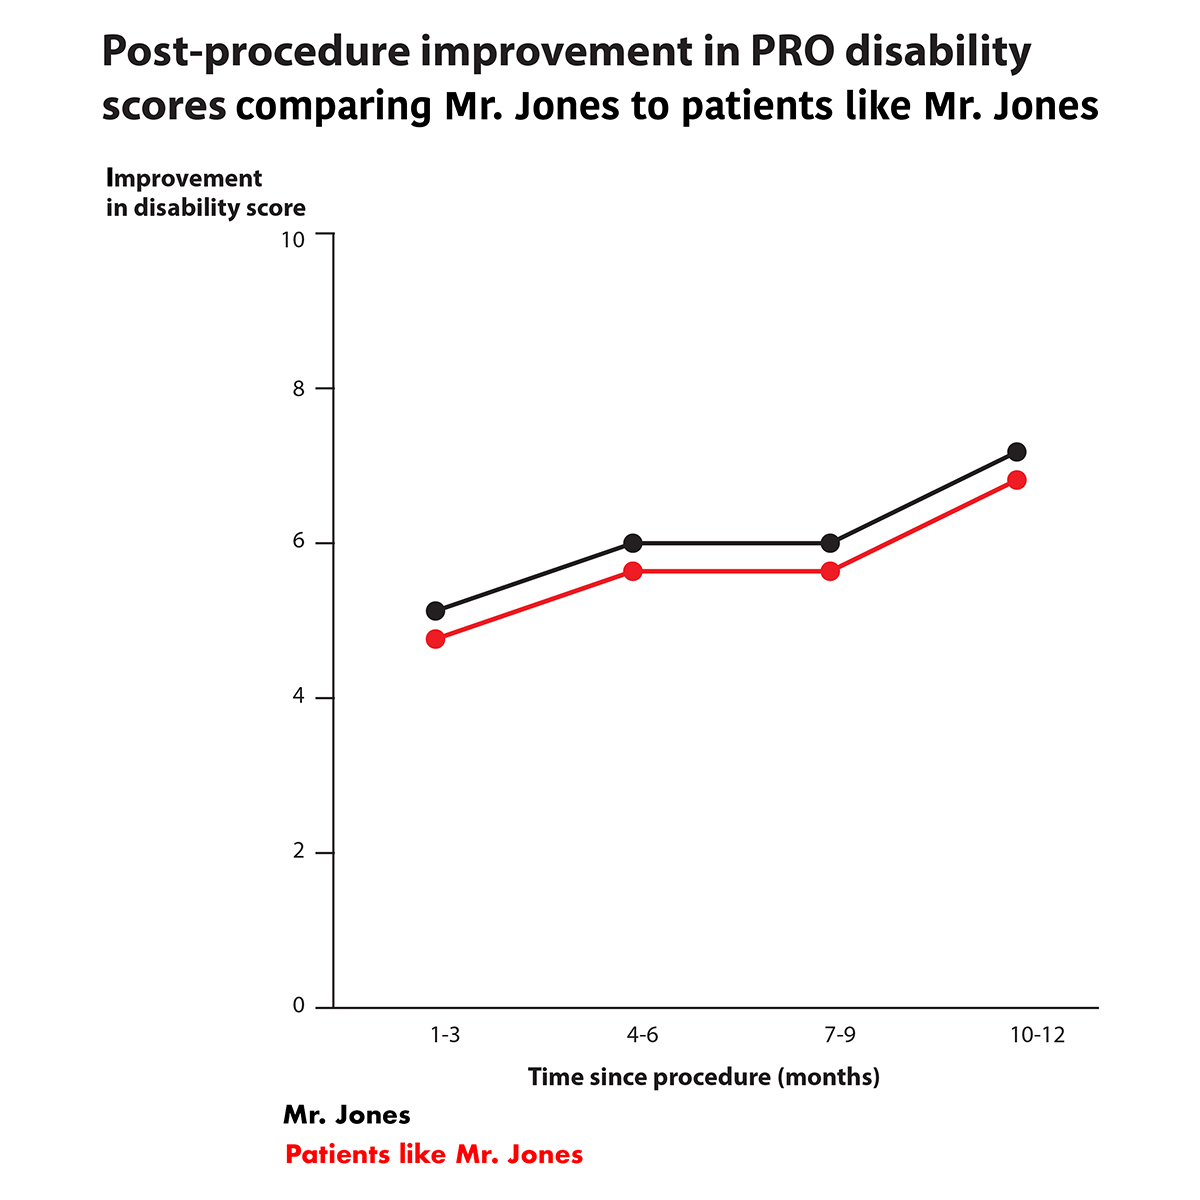 Graph showing post-intervention improvement in PRO disability scores for Mr. Jones and patients like Mr. Jones